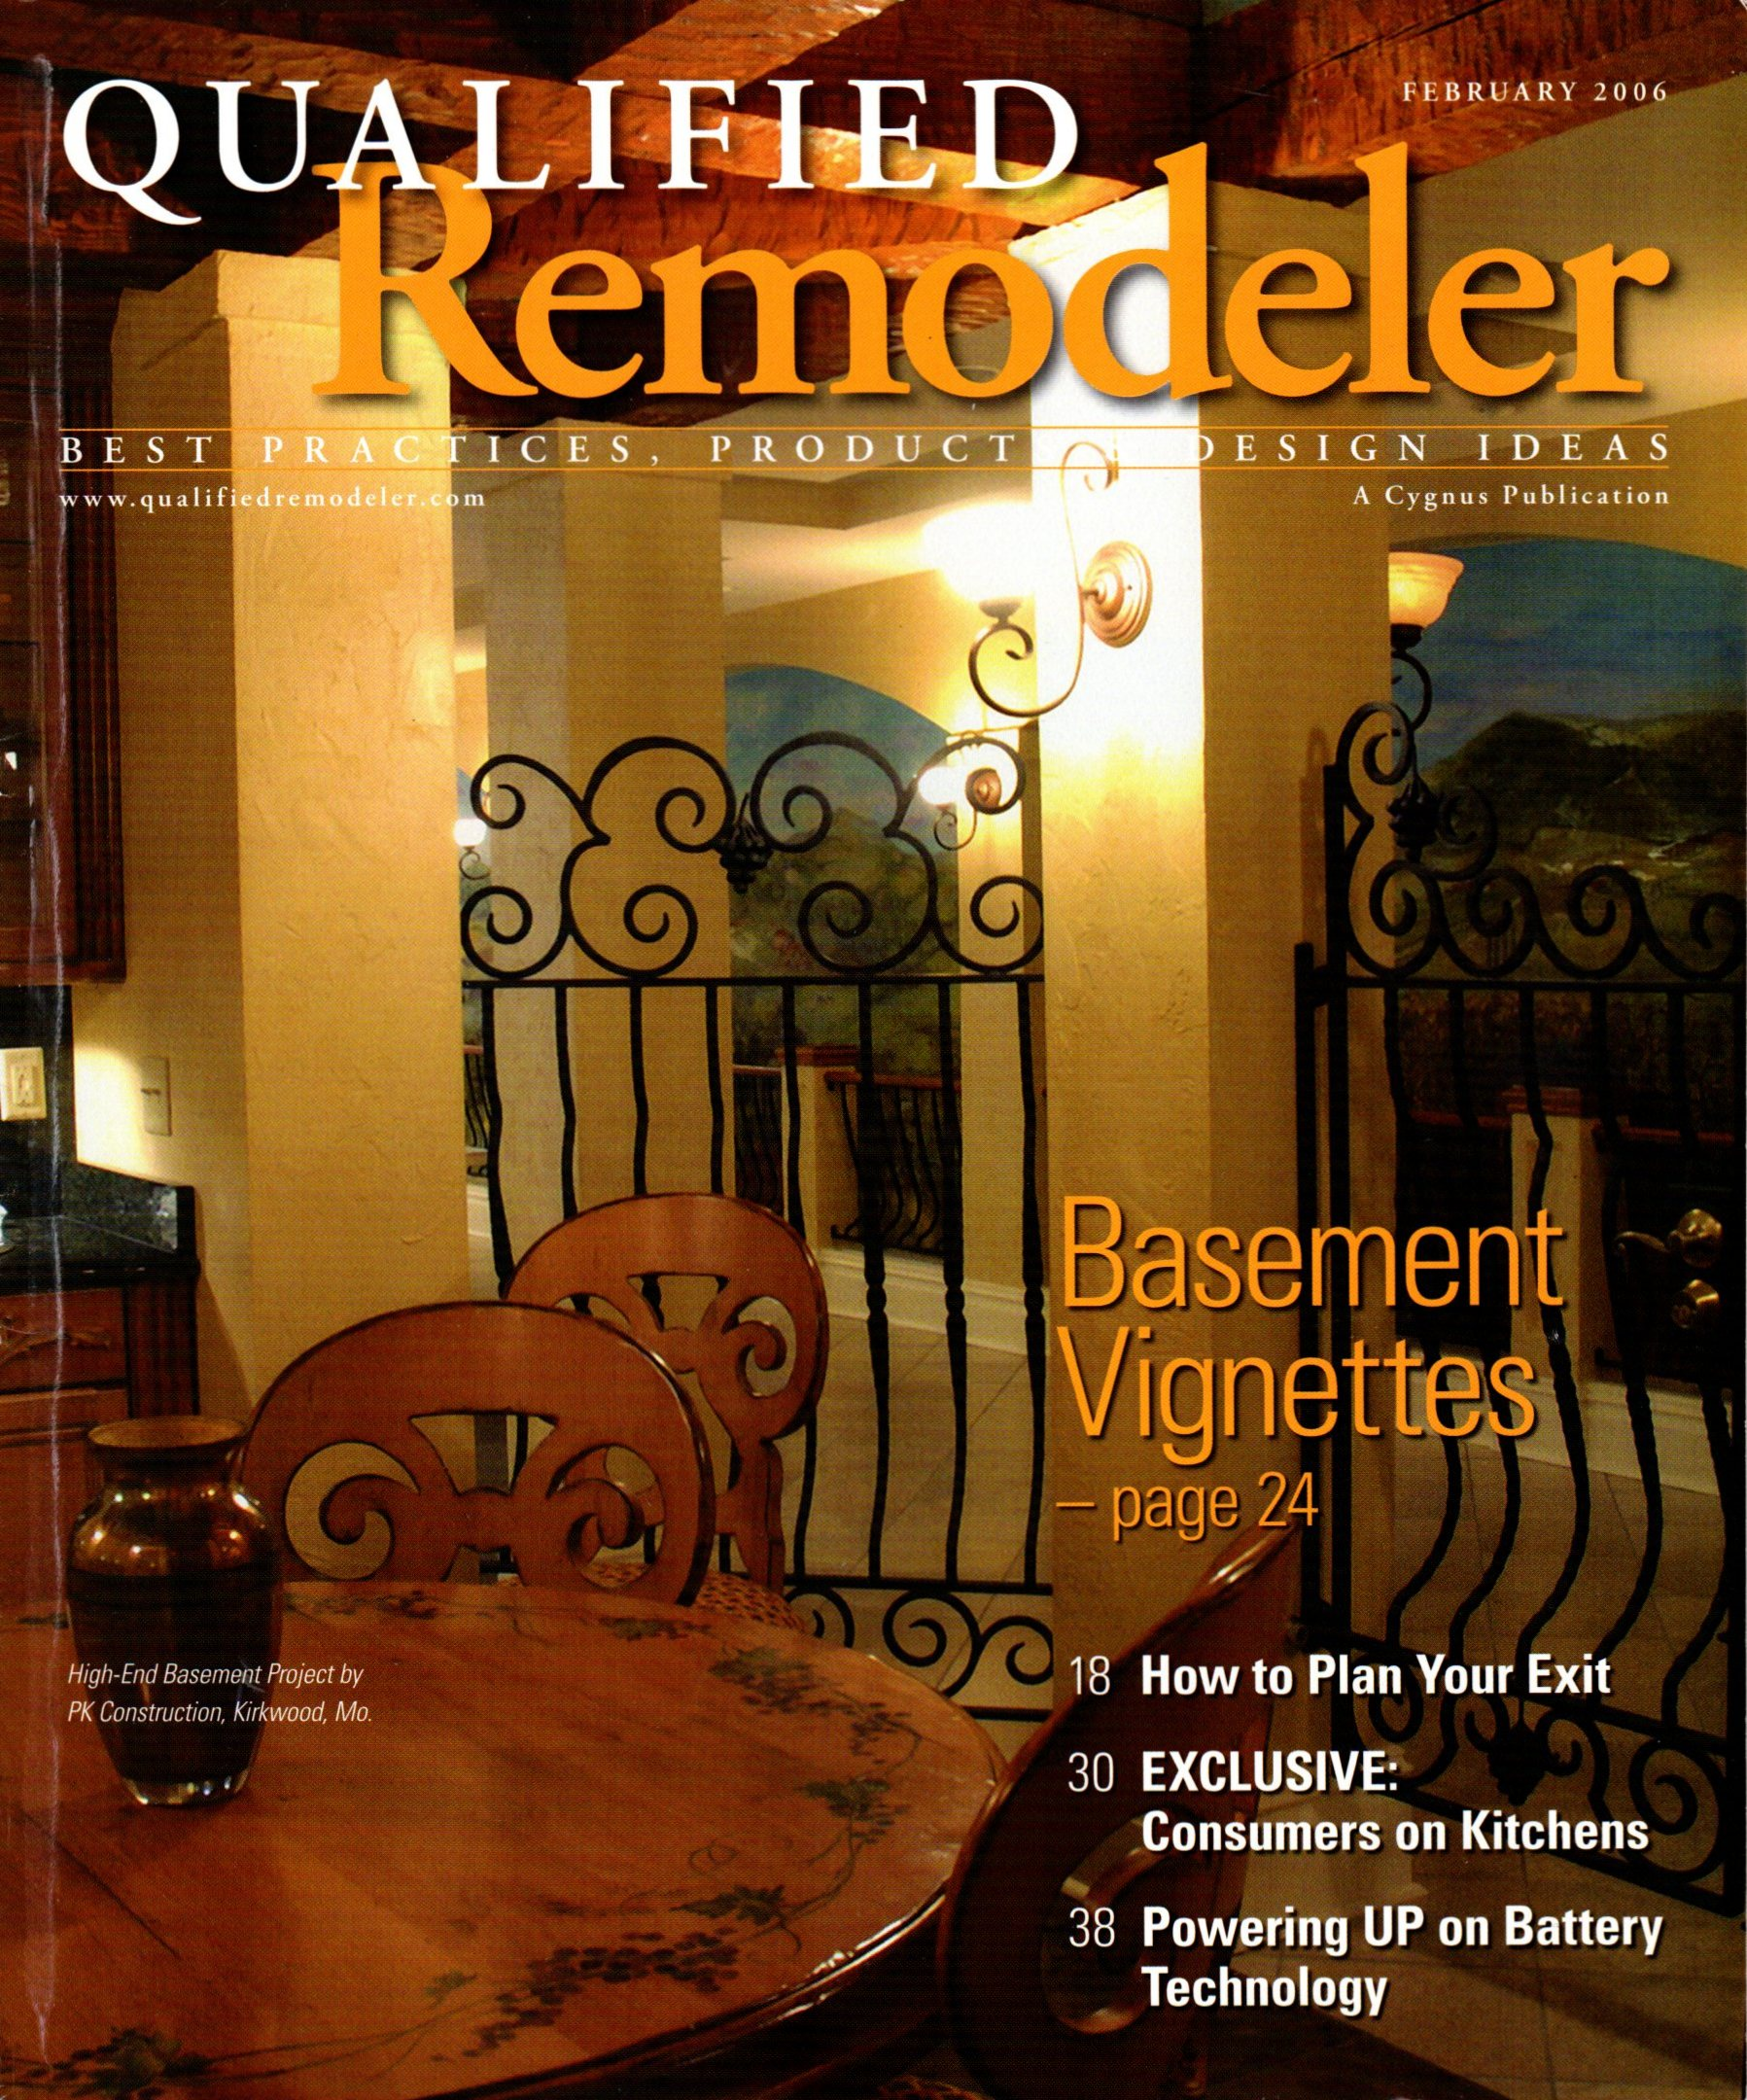 Qualified Remodeler, February 2006